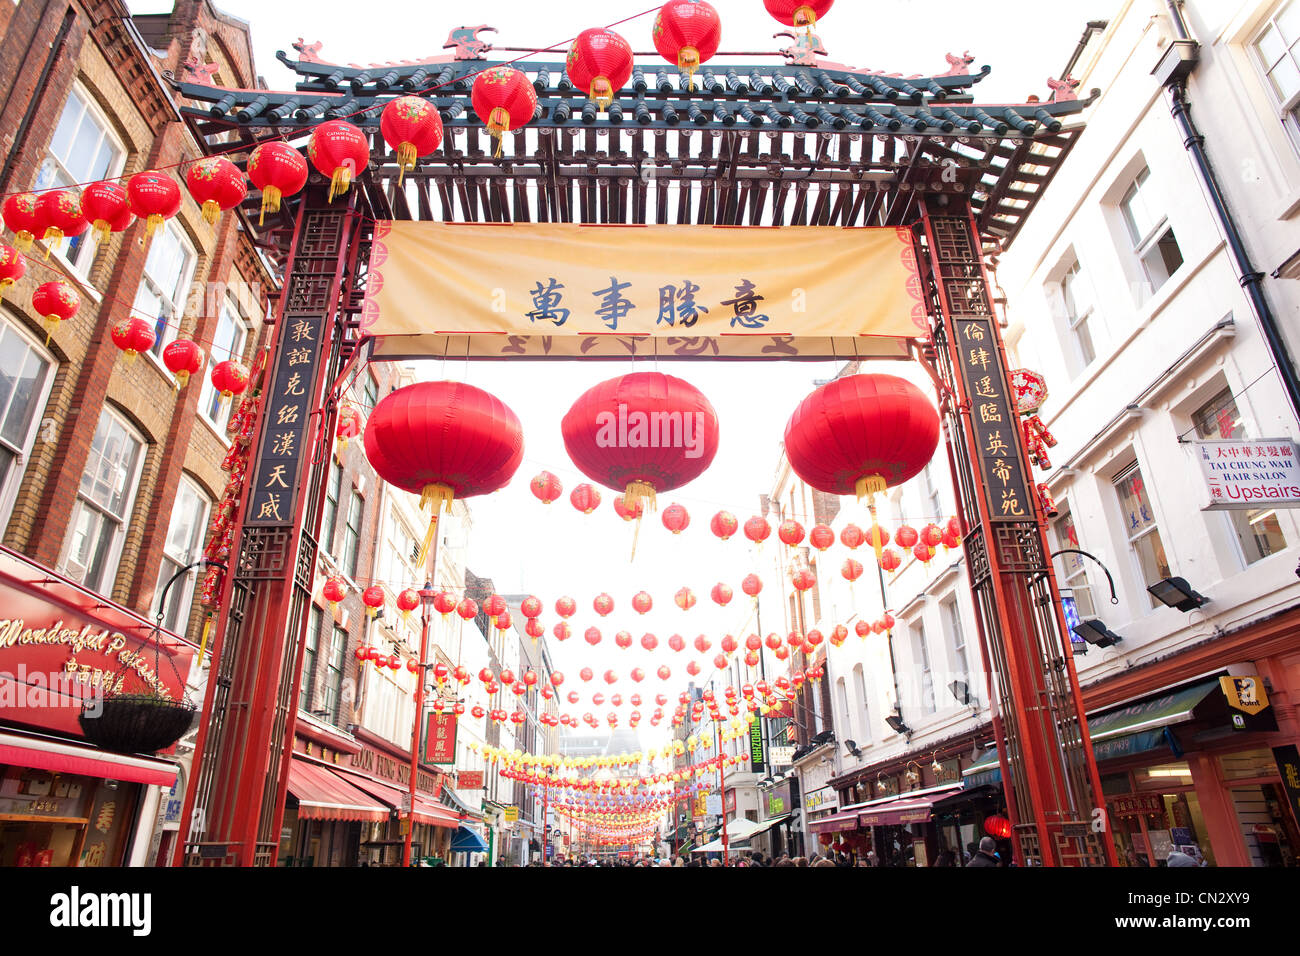 Chinese New Year, China Town, London - Stock Image